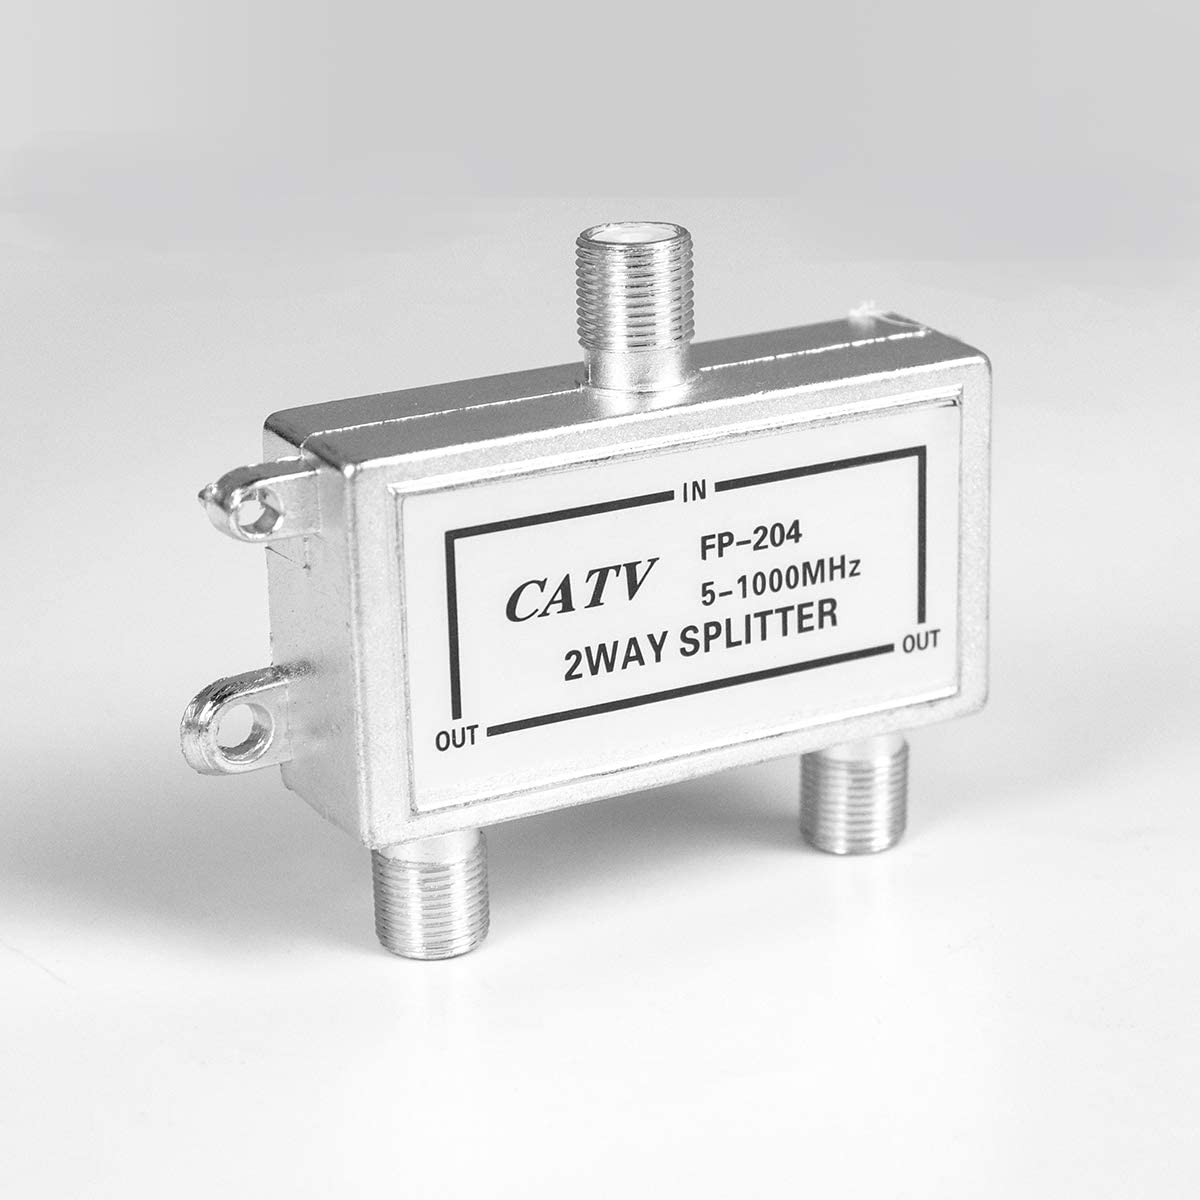 Daisypower 2-Way Coaxial Cable Splitter for CATV TV Antenna Coaxial Signal Split